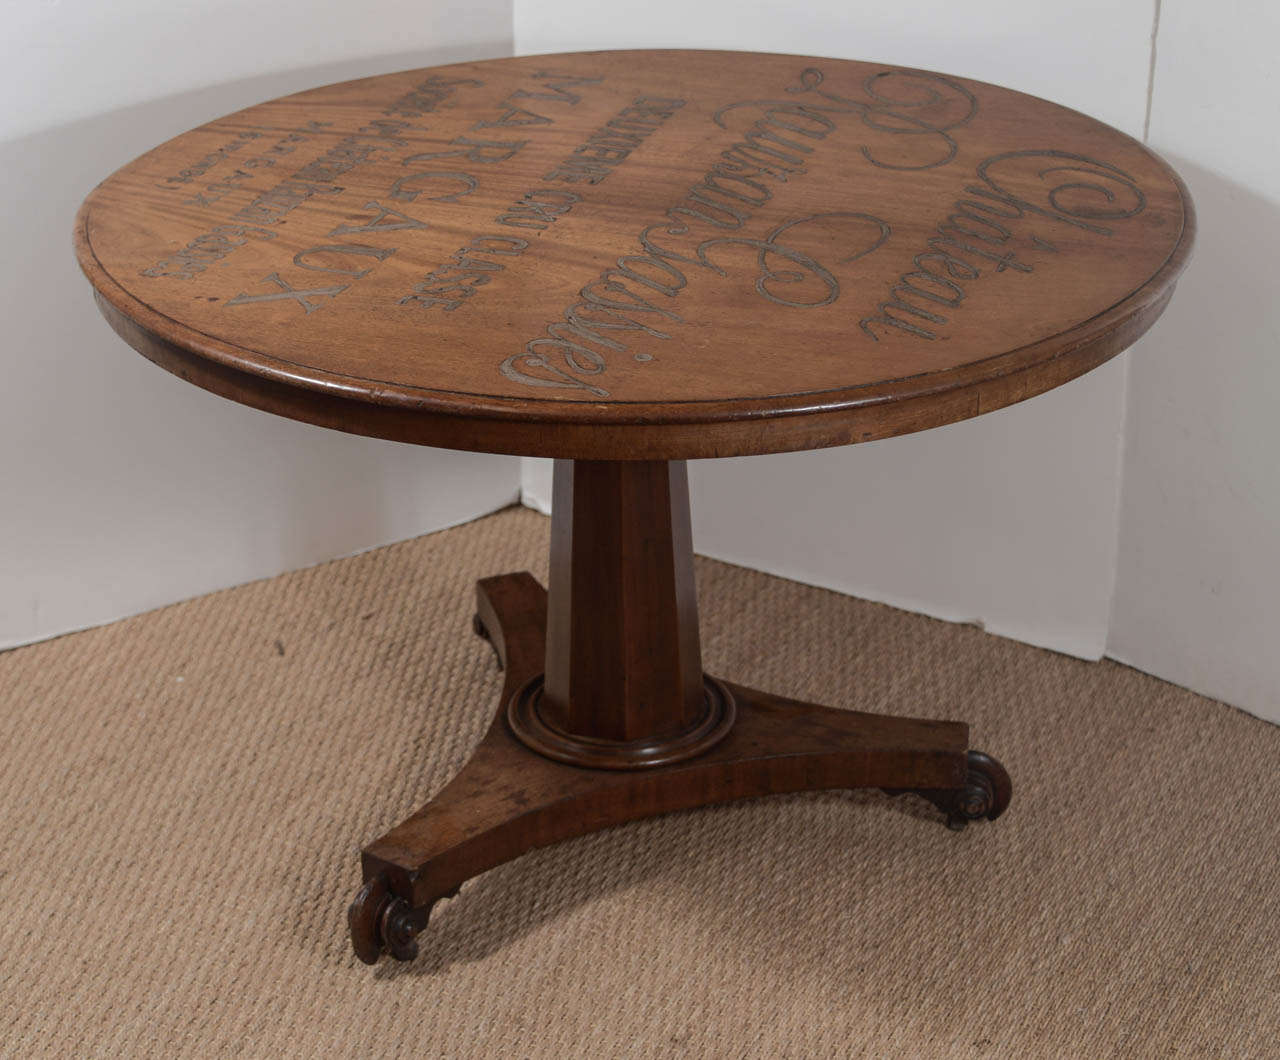 19th c french flip top wine or gaming table at 1stdibs for Table th rotate